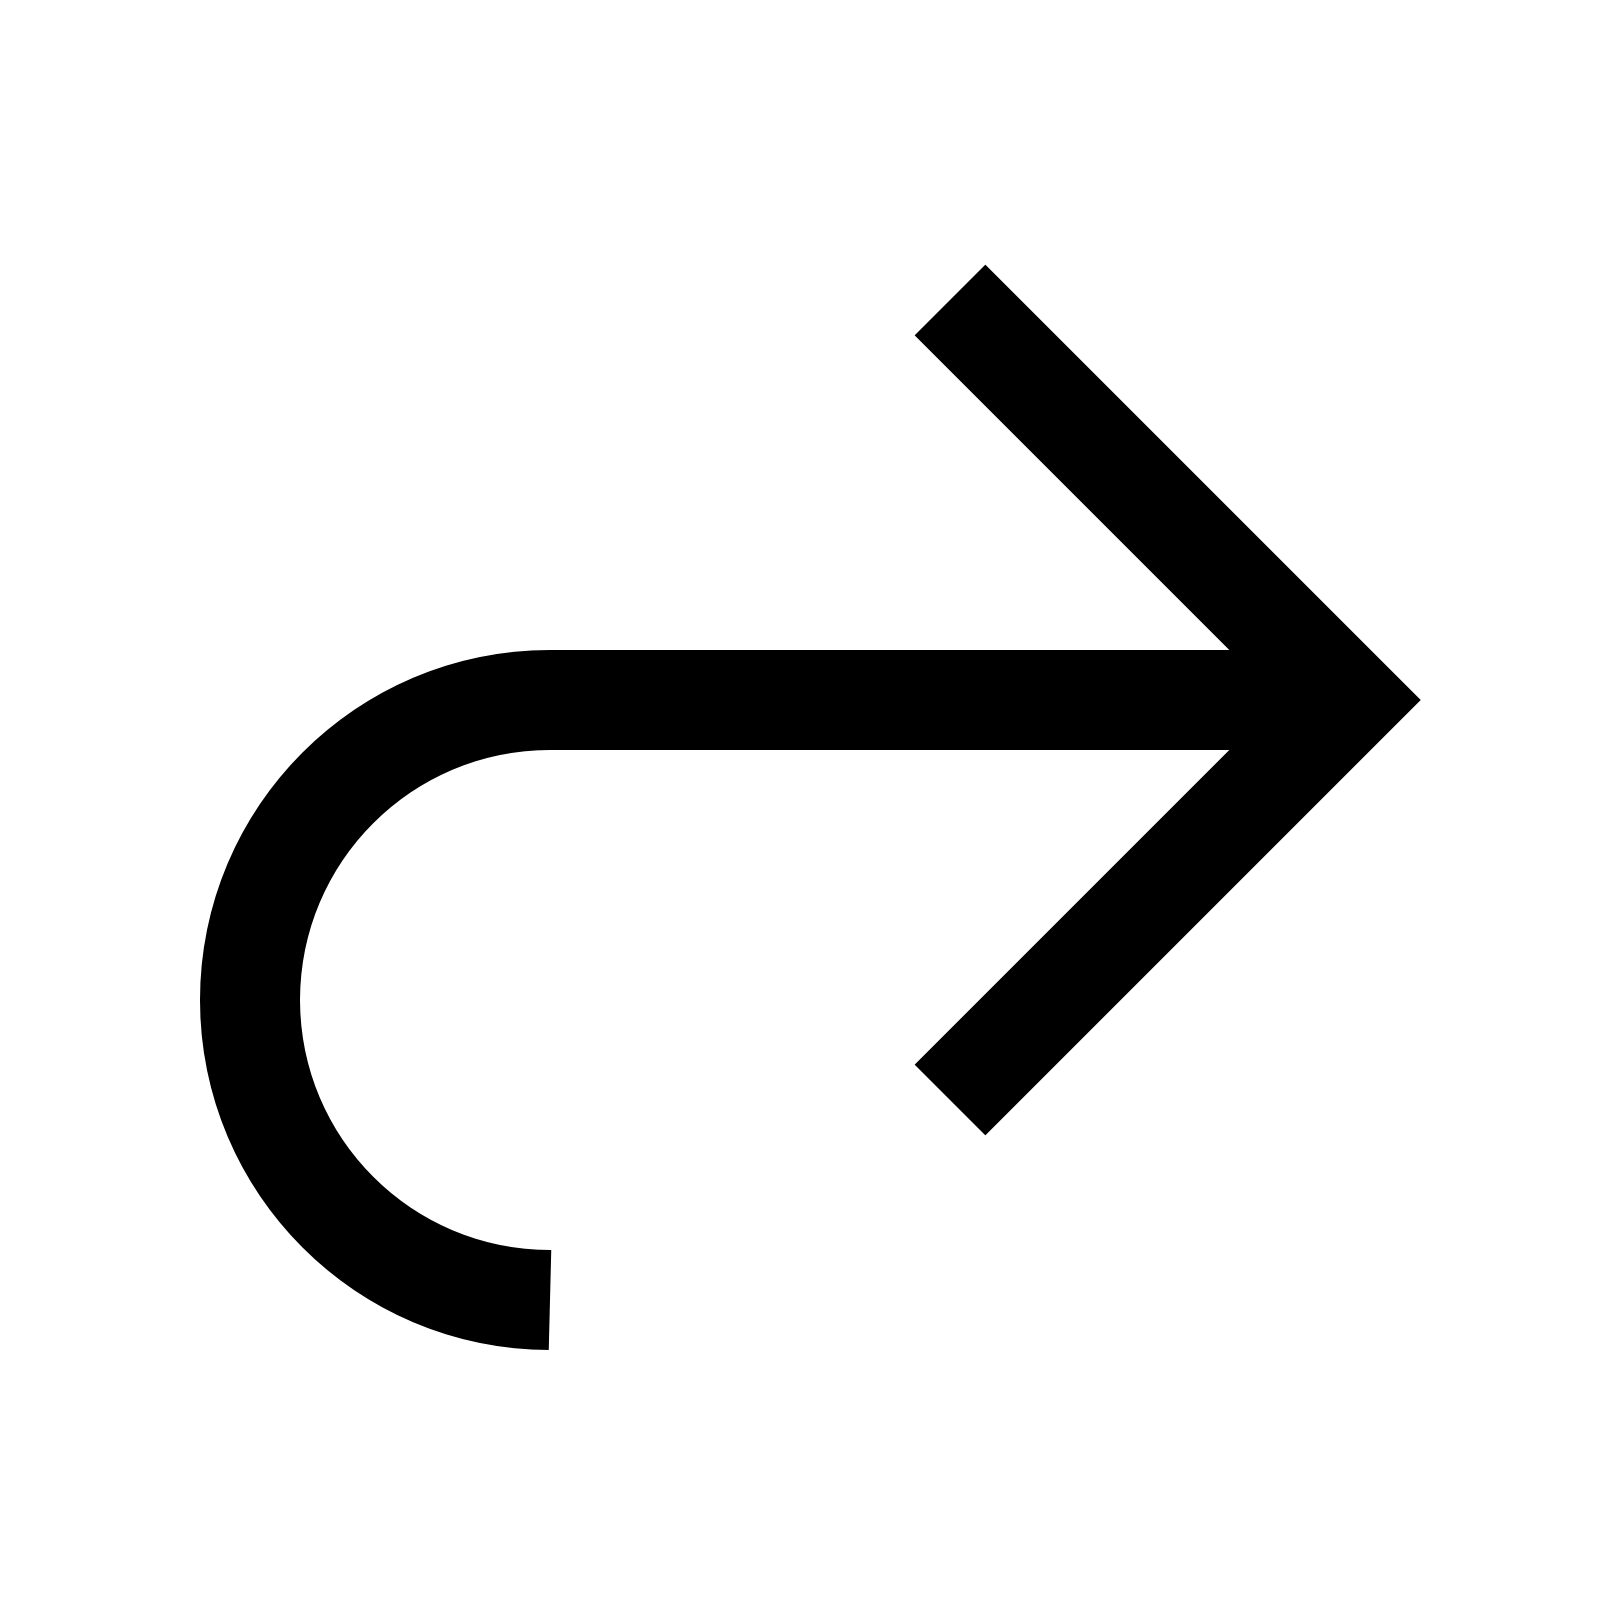 Forward Arrow icon - Right Arrow PNG